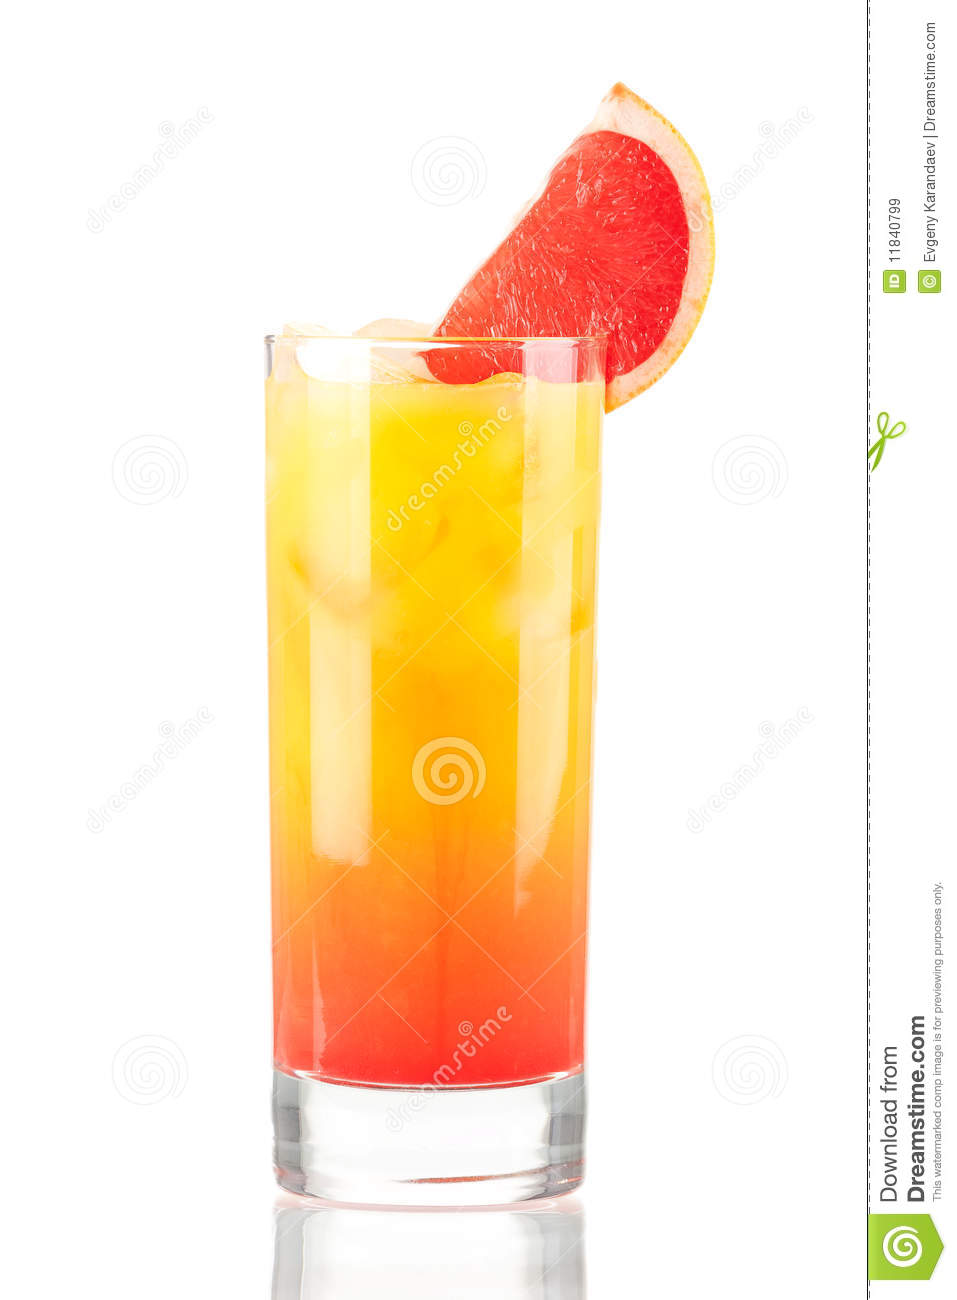 Tequila sunrise alcohol cocktail royalty free stock images for Cocktail de fruit